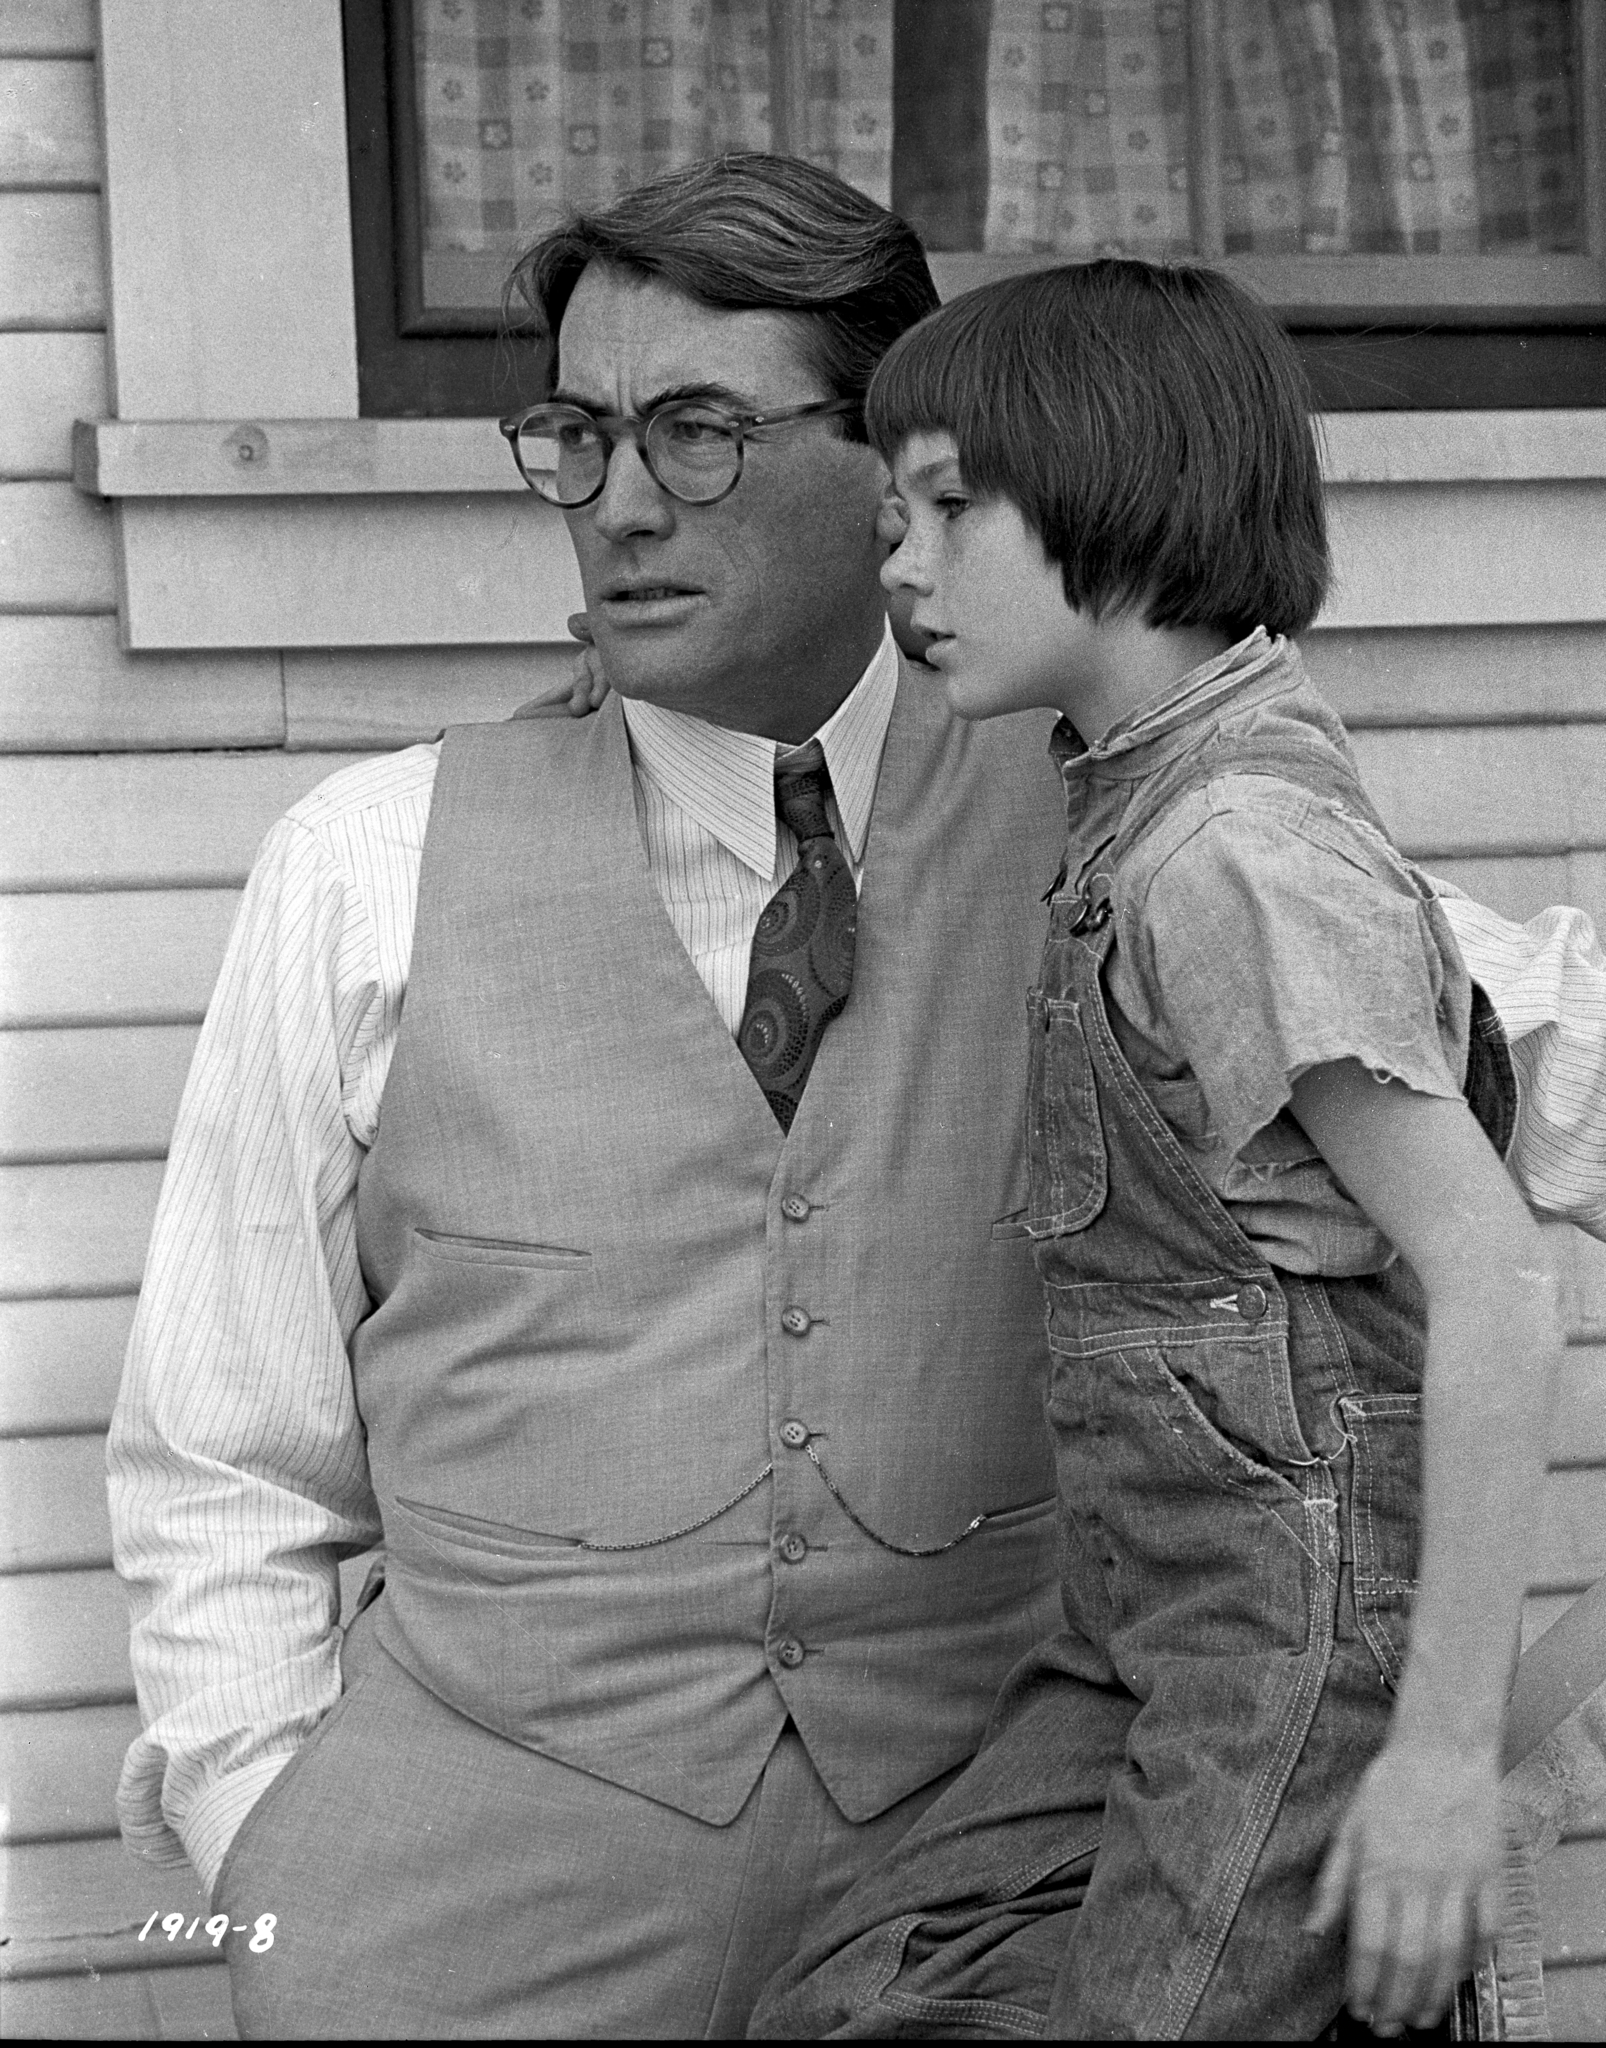 Gregory Peck and Mary Badham in To Kill a Mockingbird (1962)